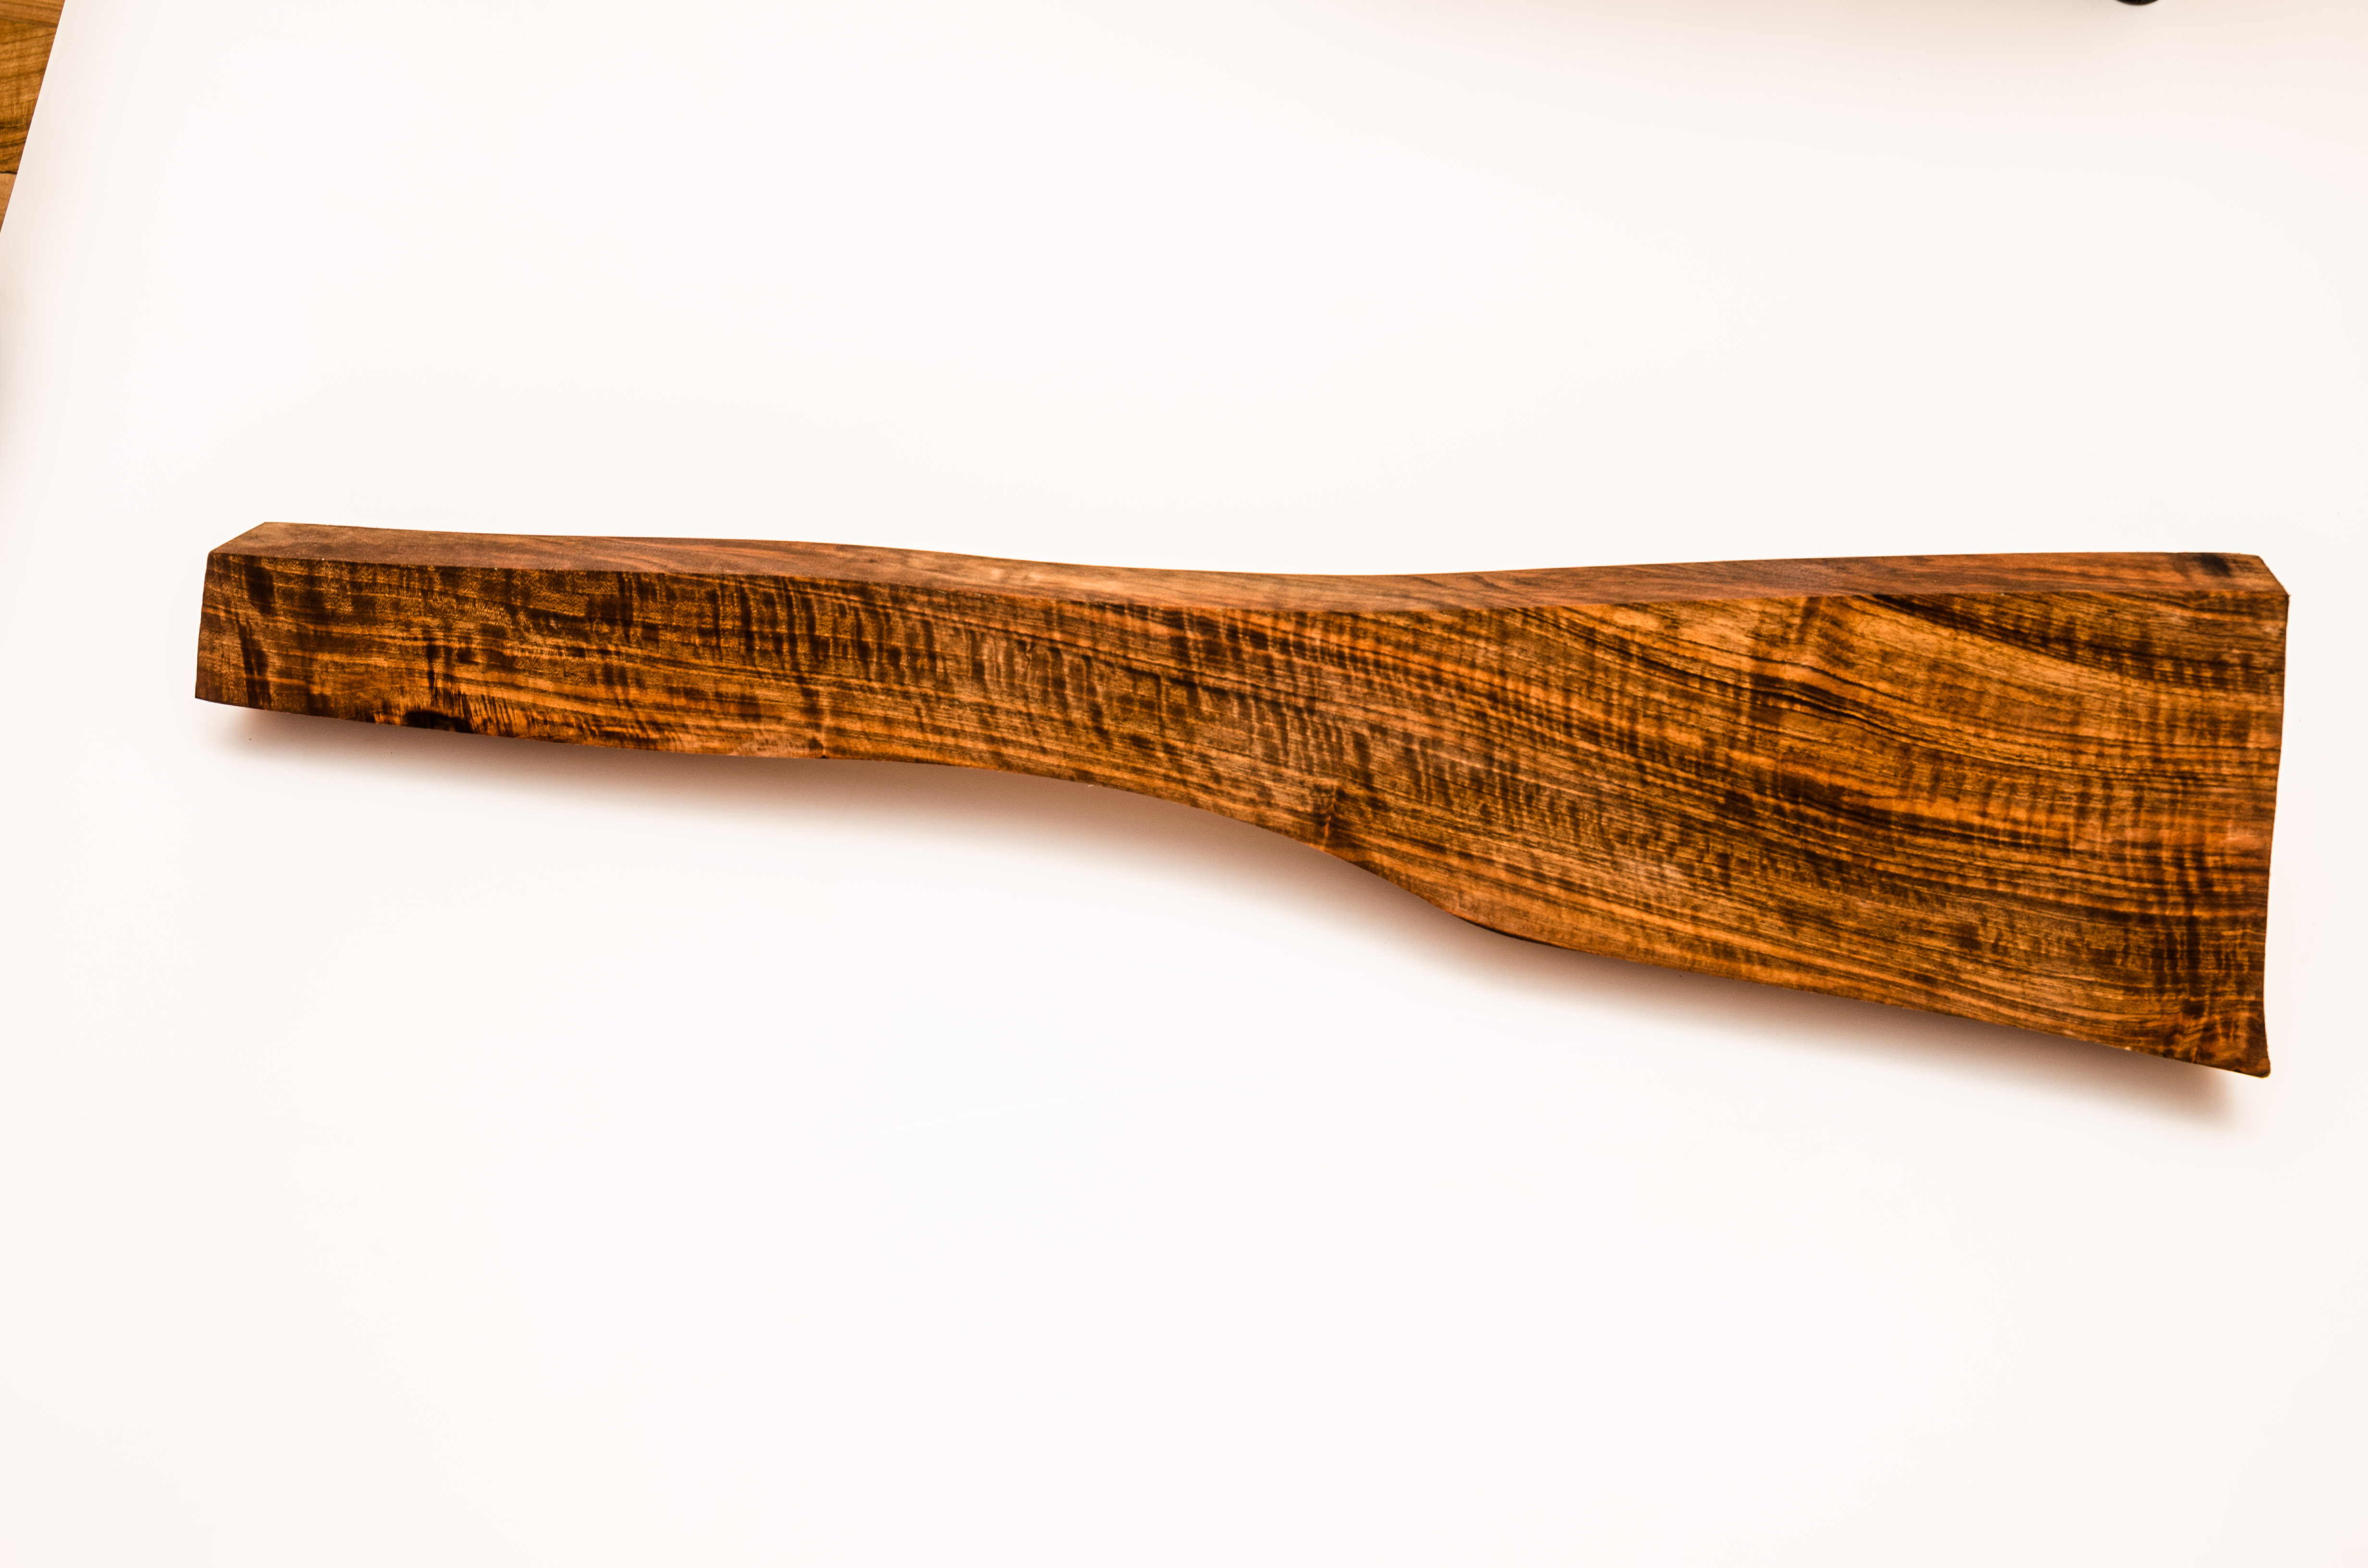 walnut_stock_blanks_for_guns_and_rifles-1582